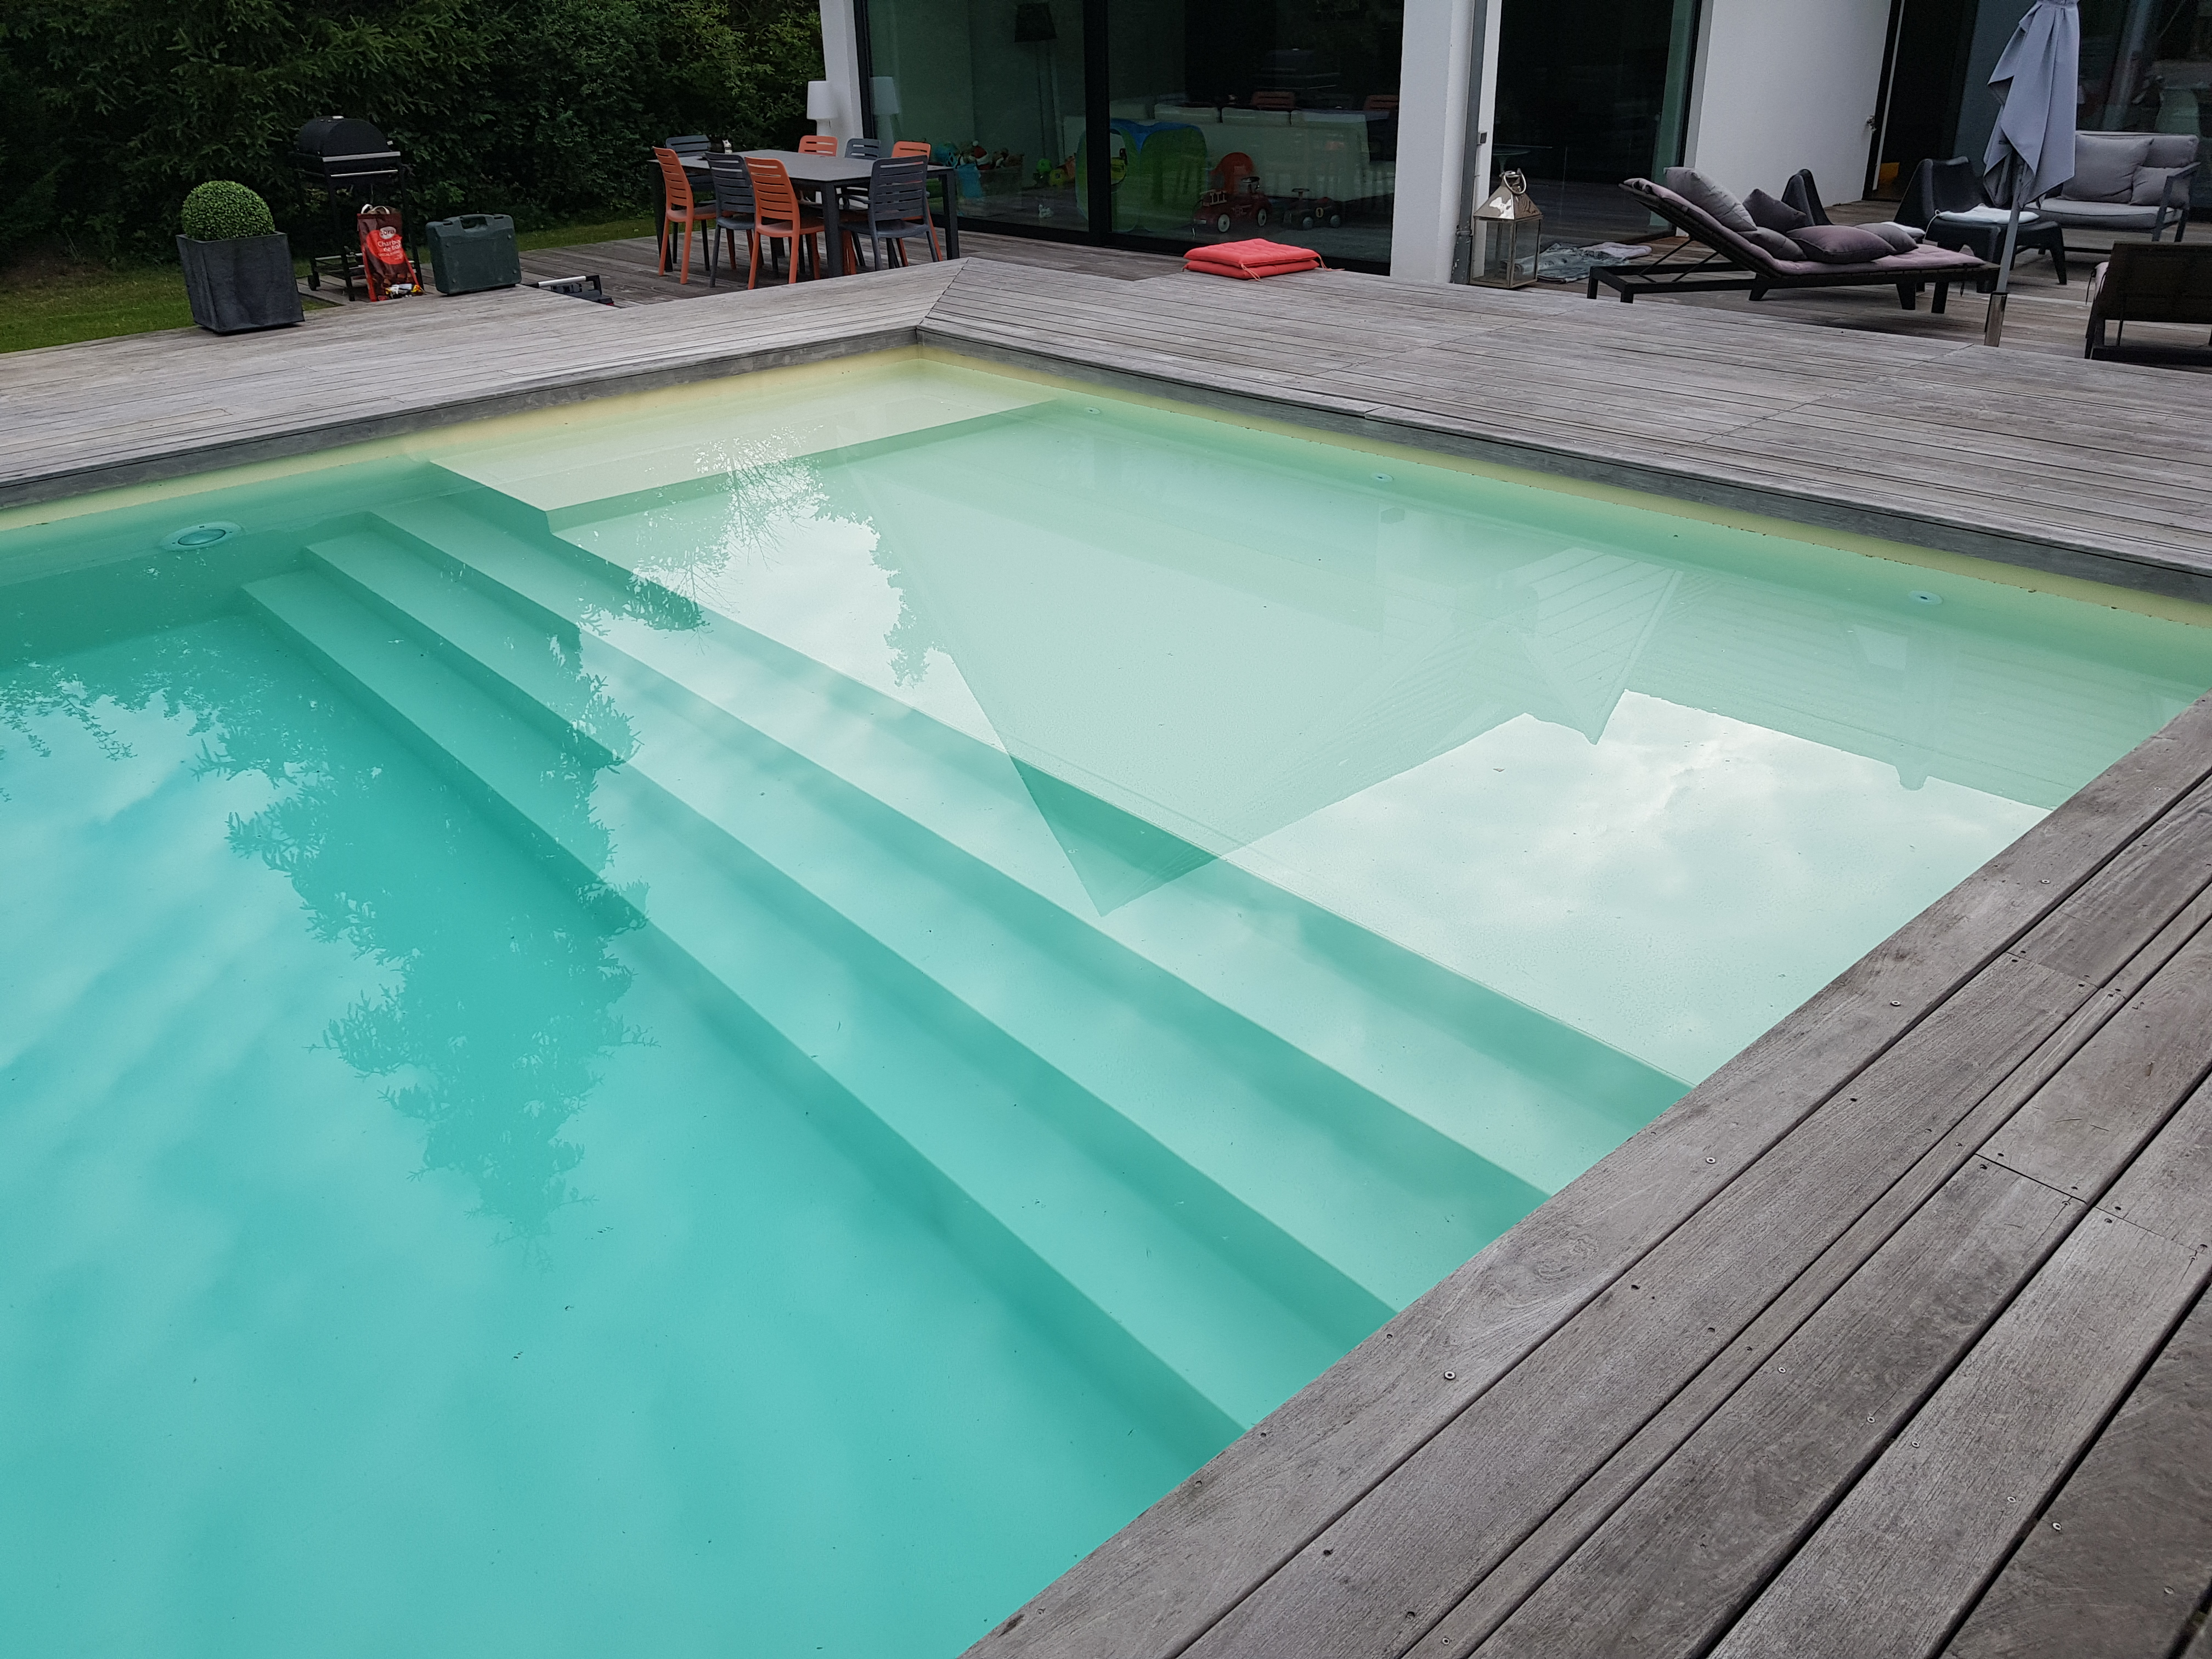 Conception de piscine